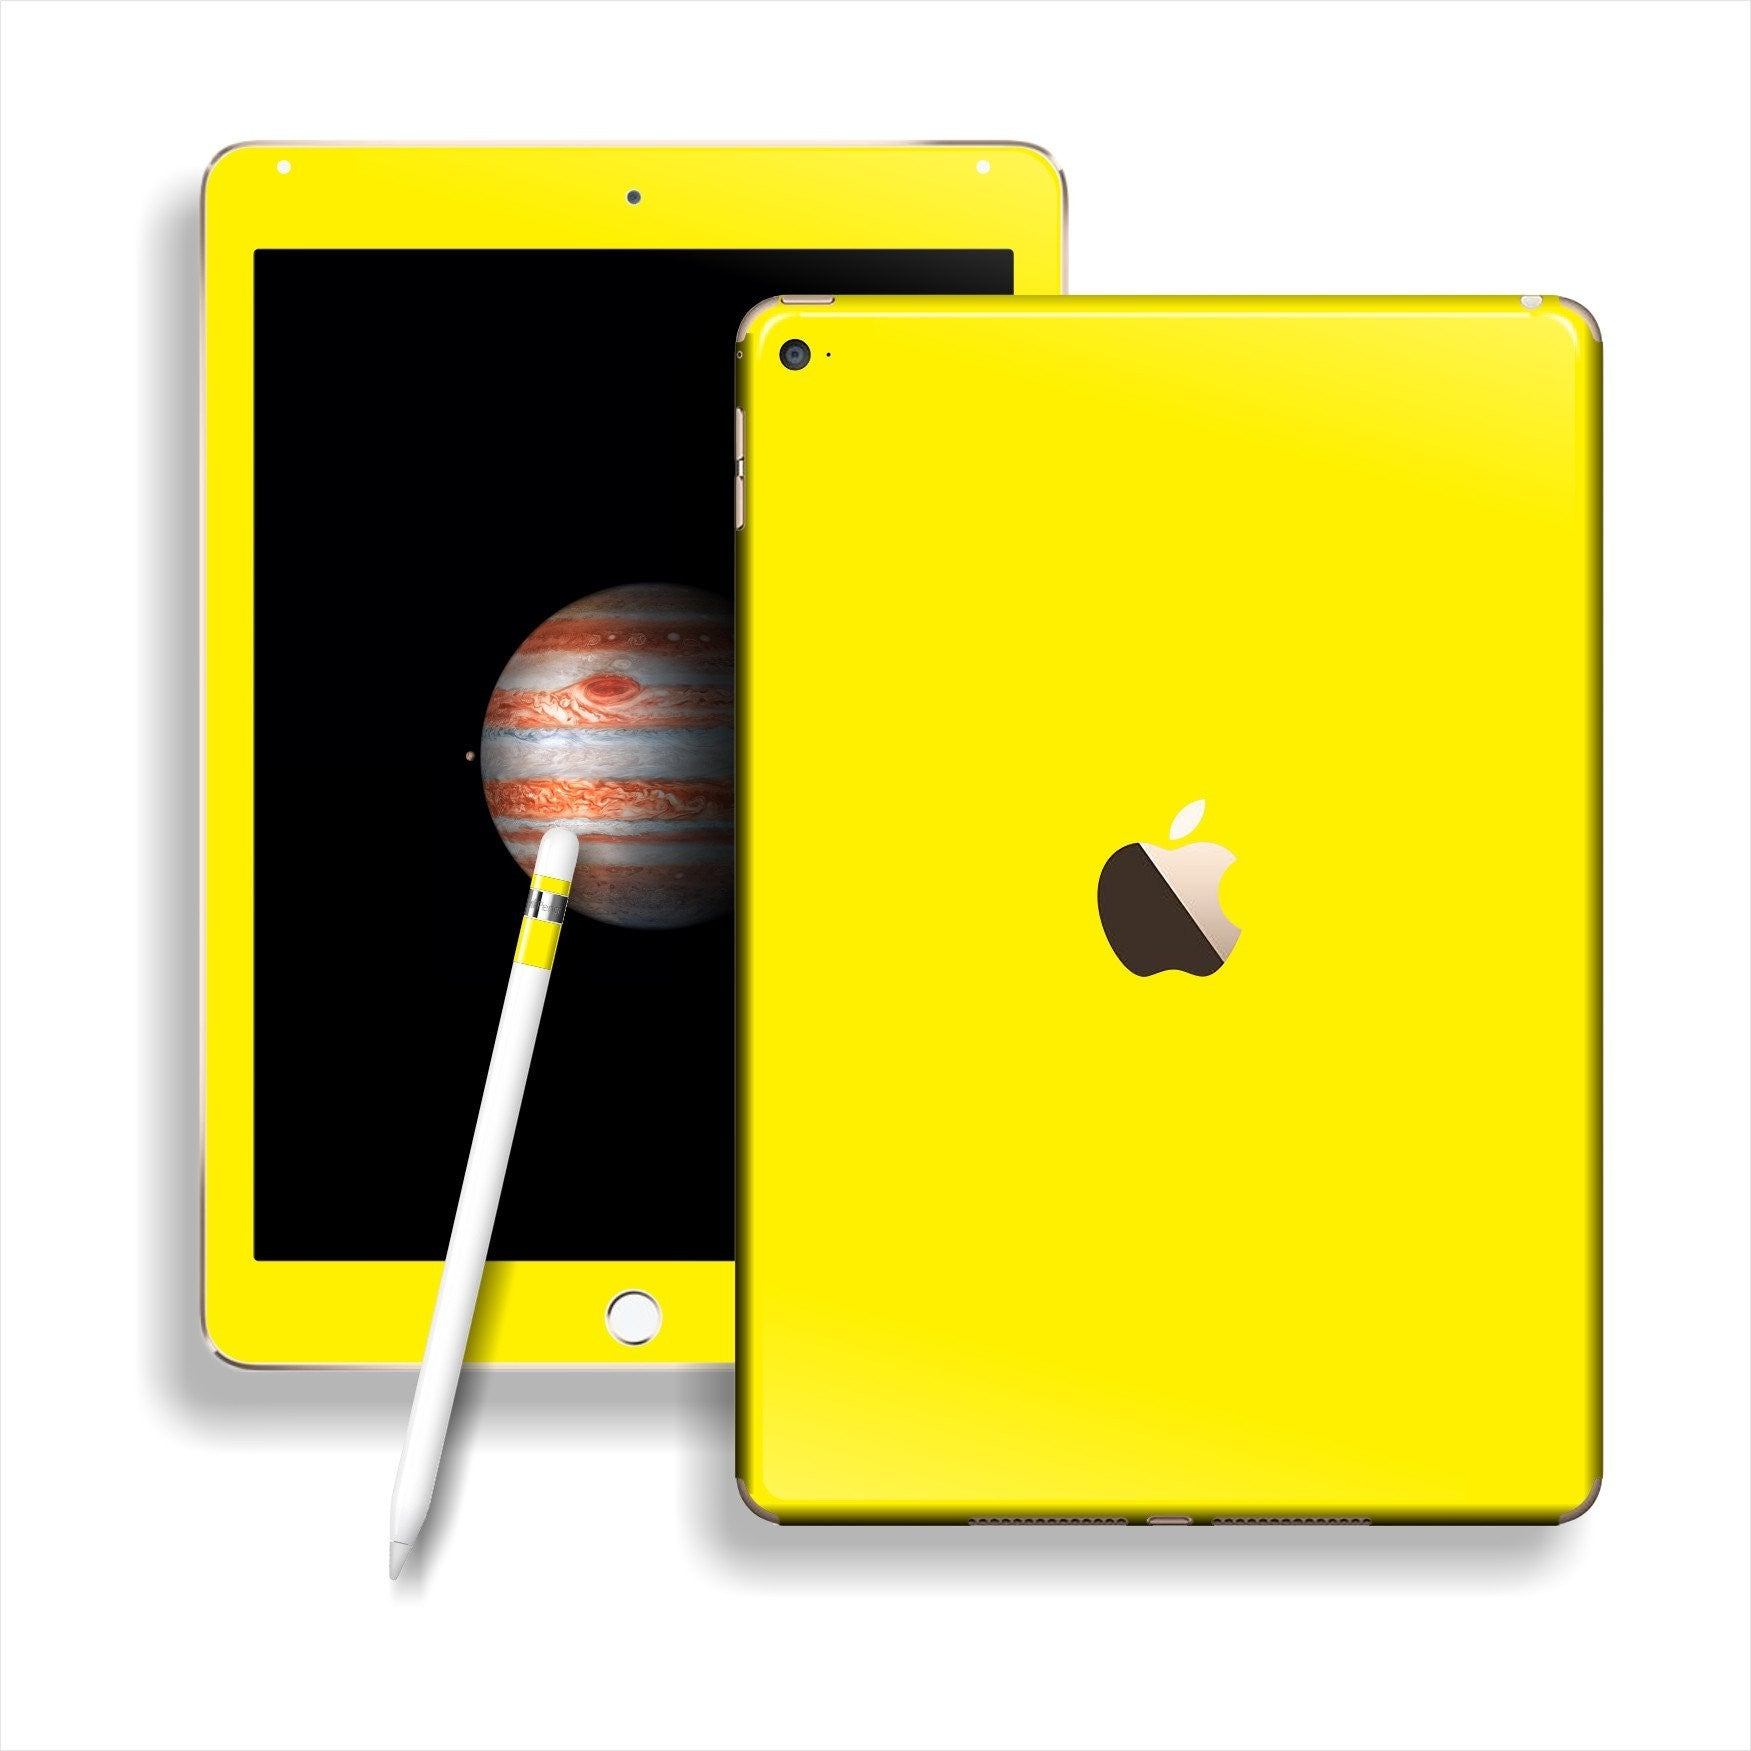 iPad PRO Glossy Lemon Yellow Skin Wrap Sticker Decal Cover Protector by EasySkinz